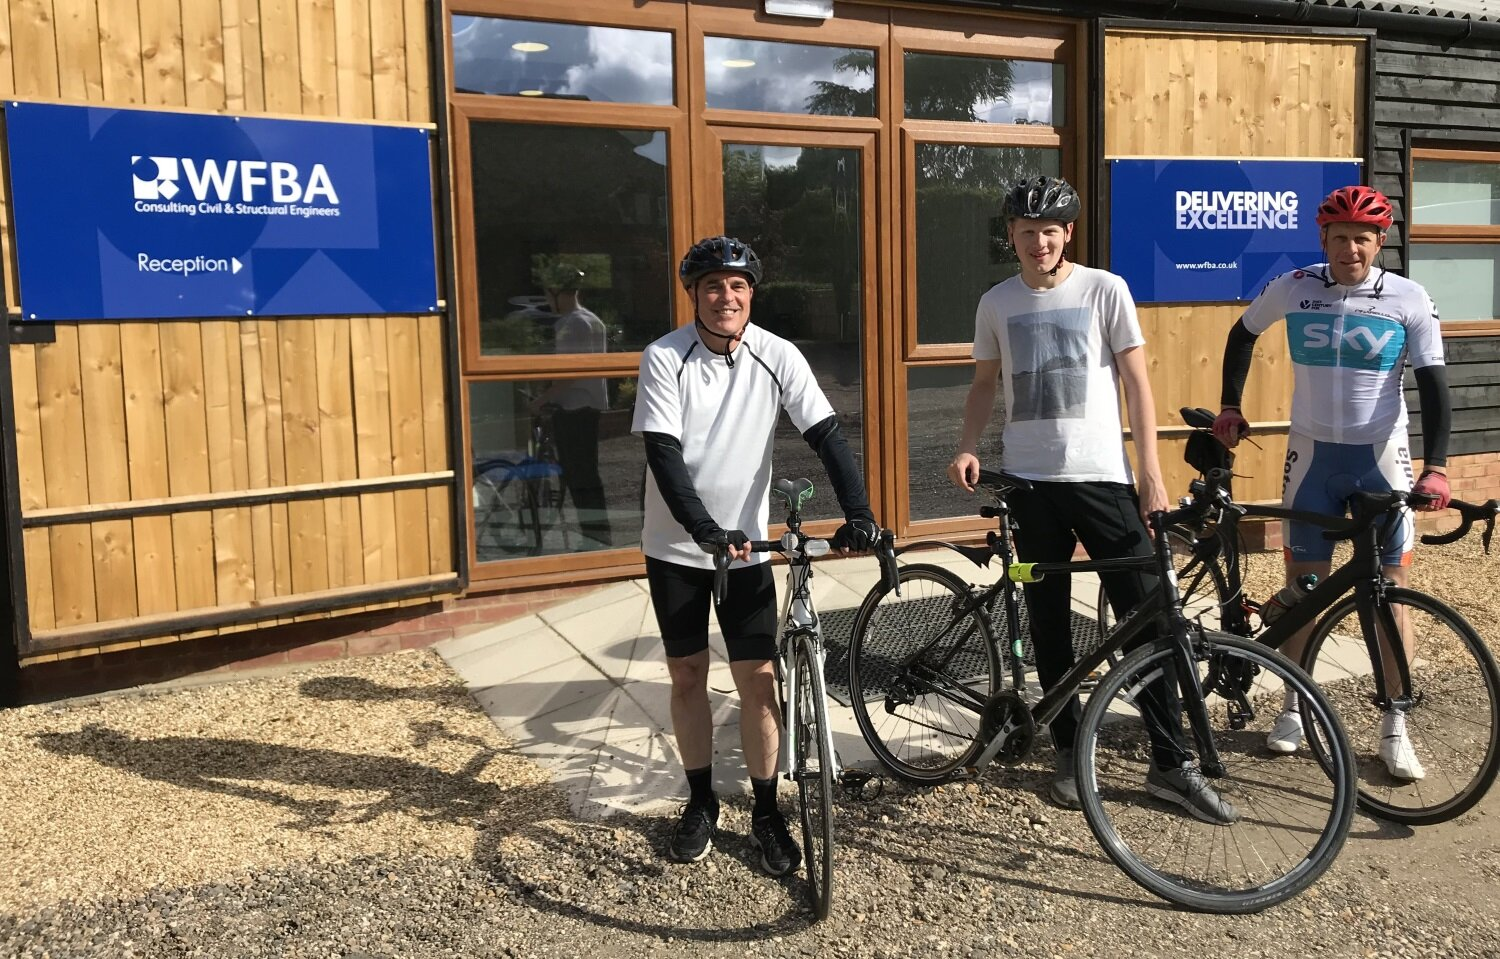 WFBA Cycle Club members (left to right) Nick Groves, Eddy Byfield and Patrick Fisher